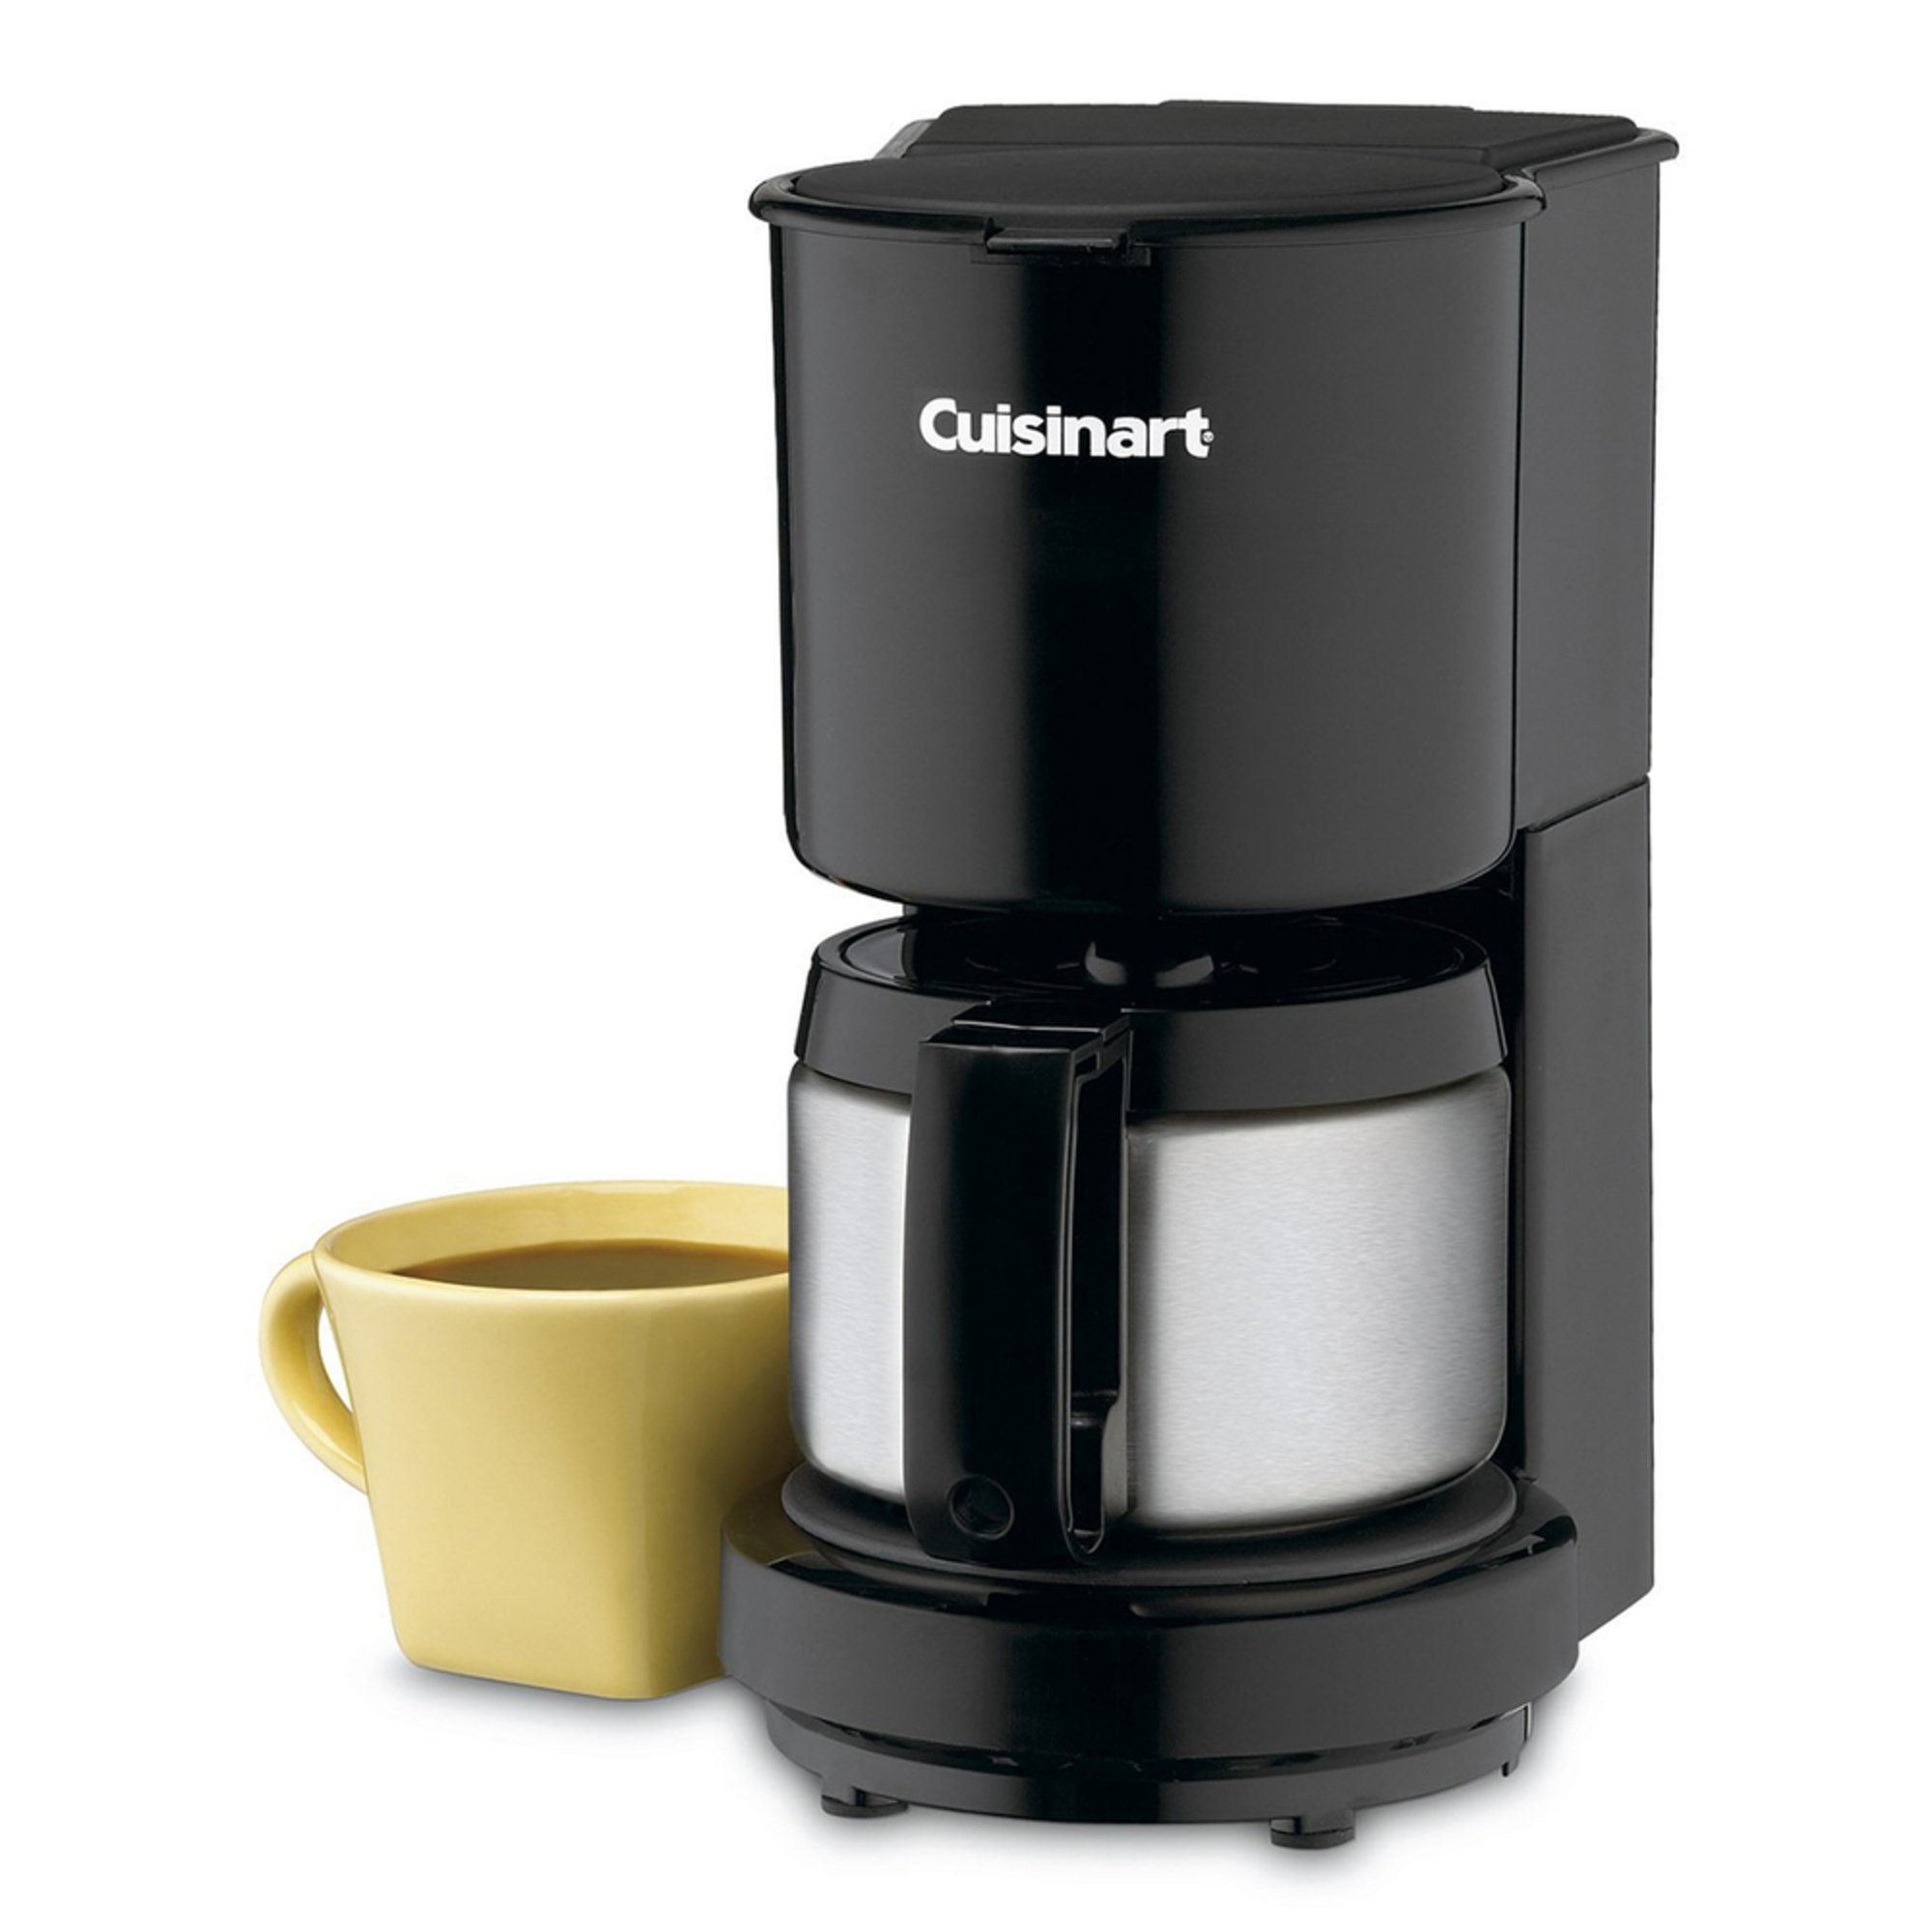 Coffee Maker Big W : Cuisinart 4 Cup Coffee Maker W/stainless Steel Carafe (dcc-450bk) Coffee Makers For The Home ...